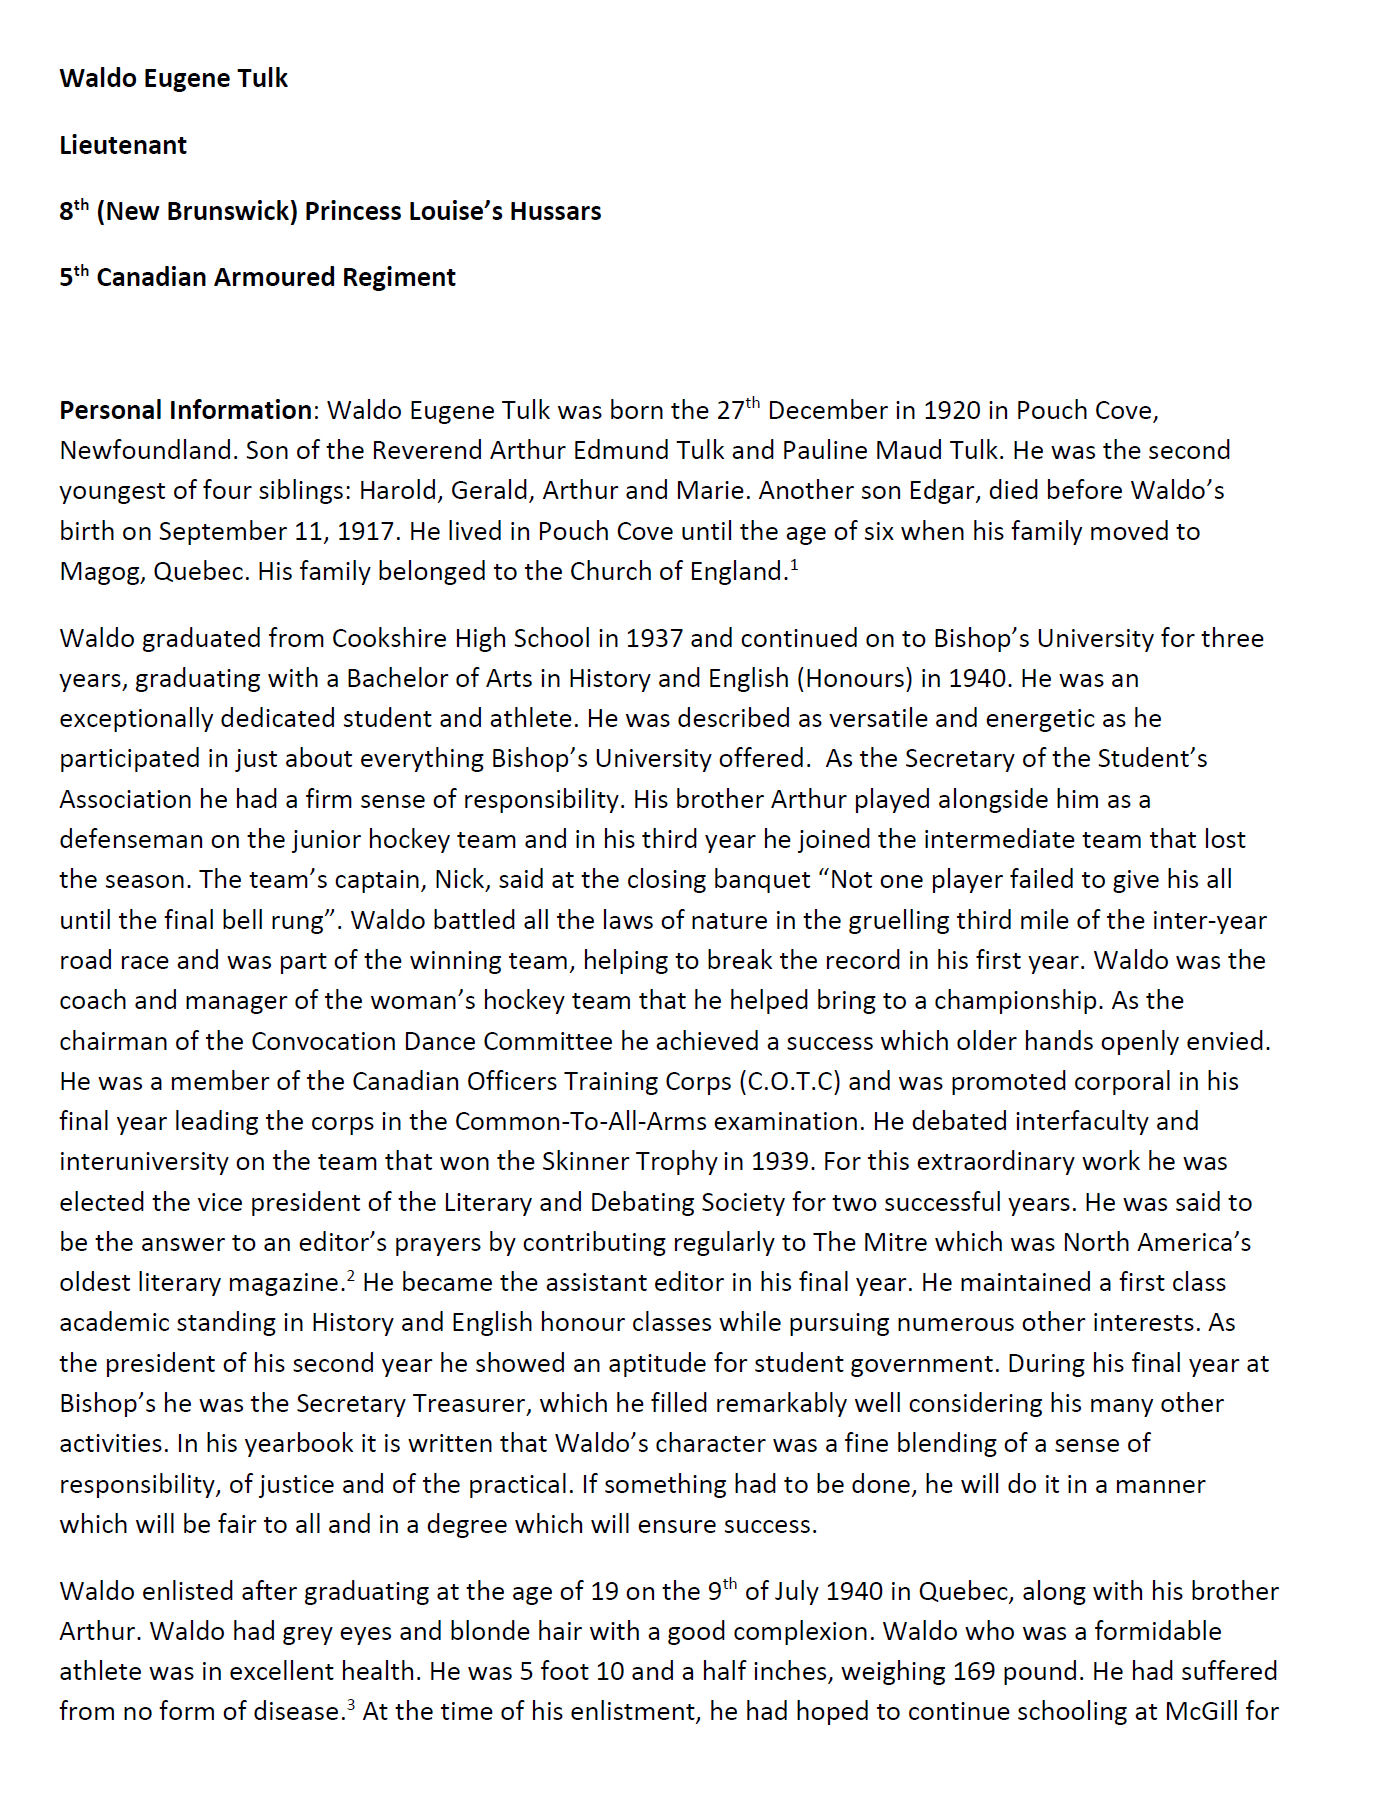 Essay (Page 1)– In 2015, the grade 11 Modern History students at Belleisle Regional High School continued to write biographies for soldiers from the local area who died during the First and Second World Wars.